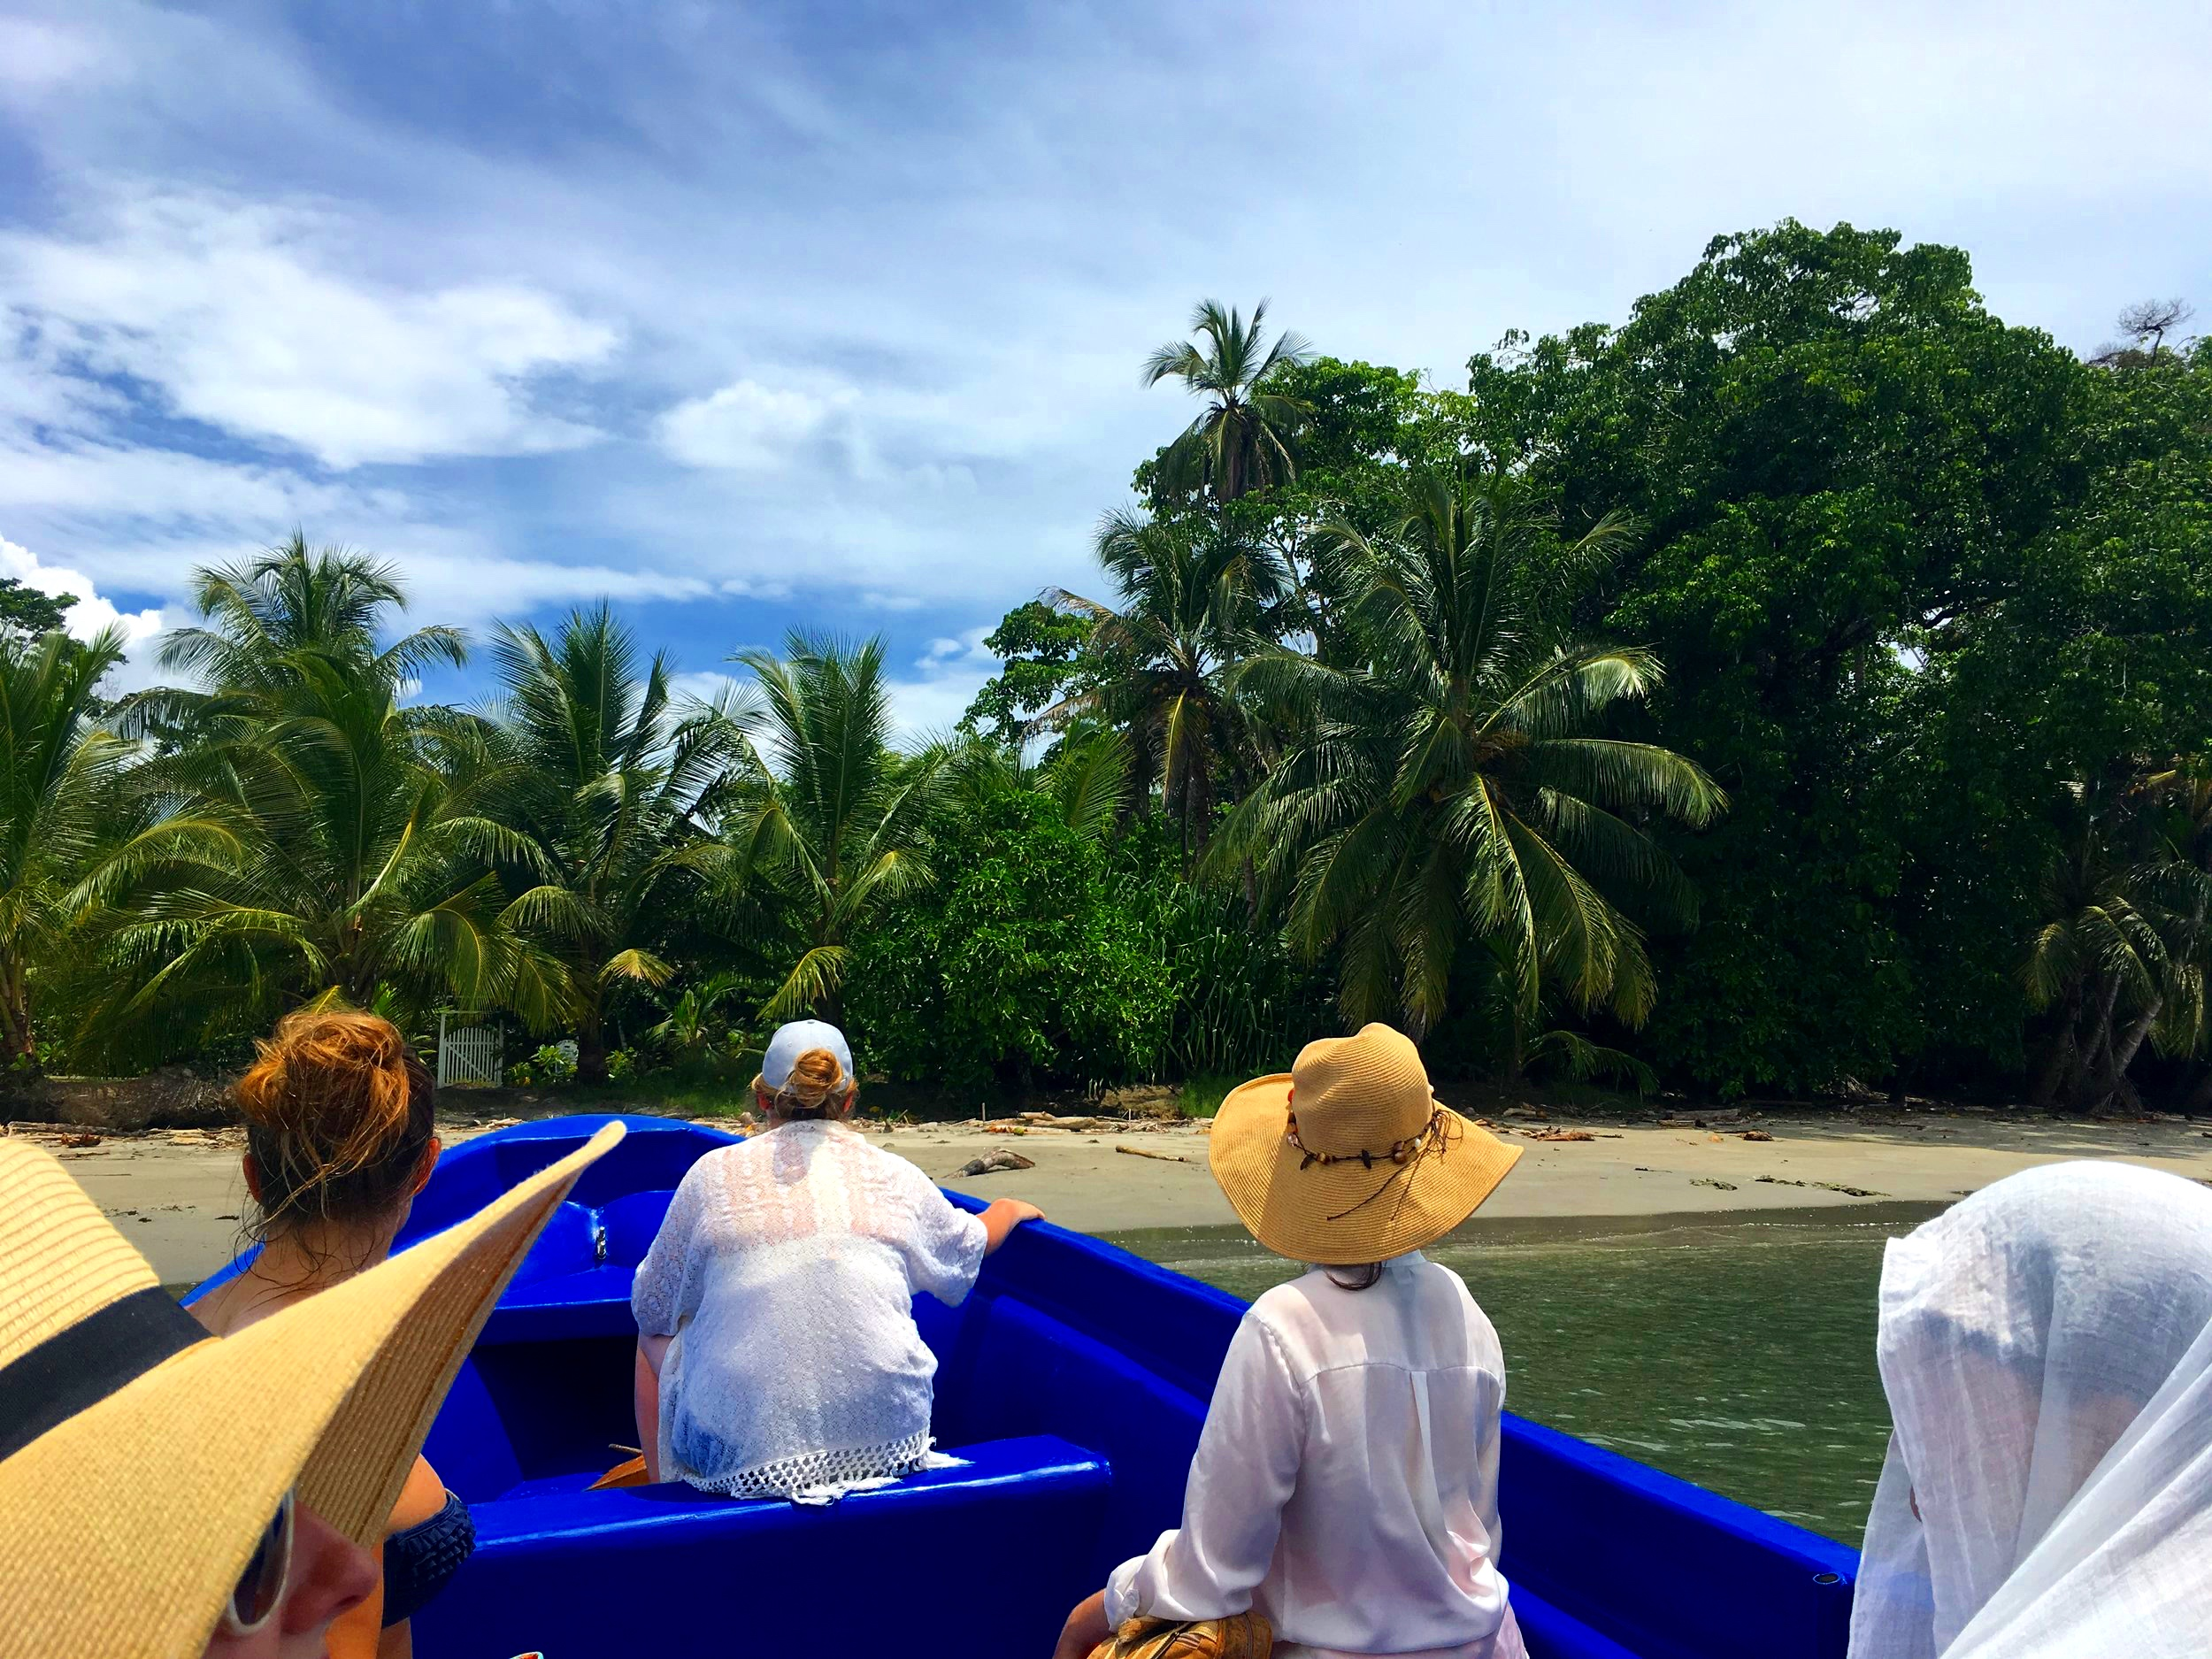 ON OUR WAY TO DOLPHN WATCH, COSTA RICA